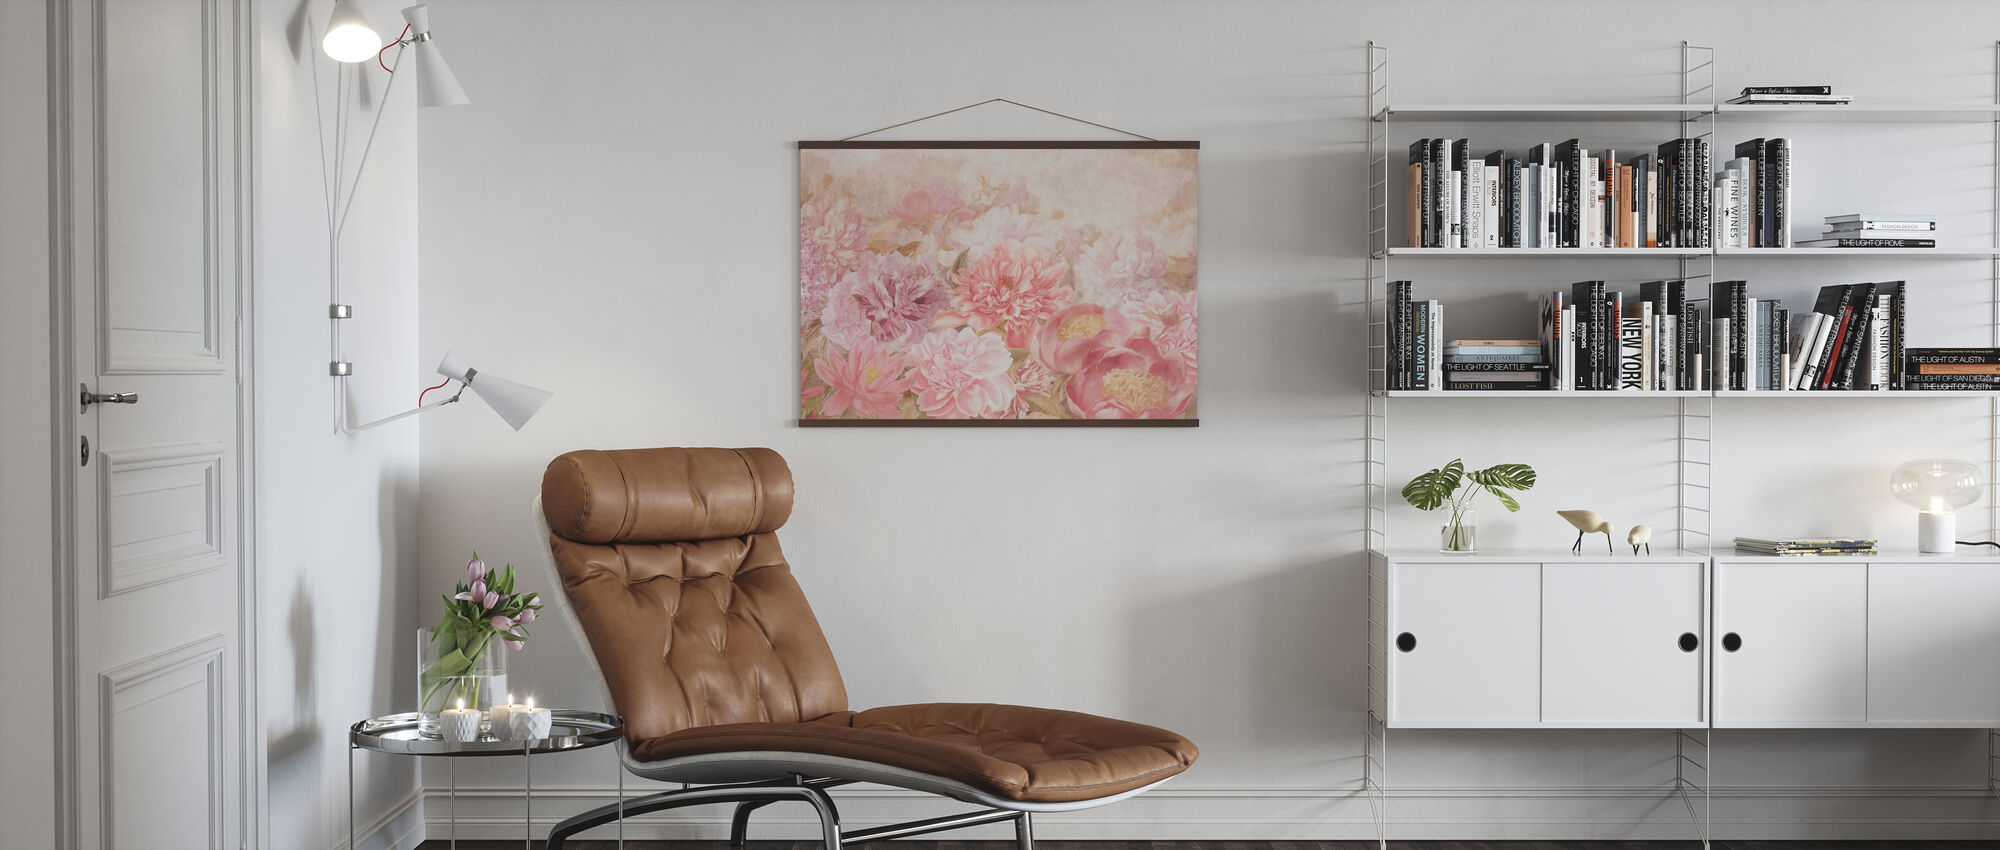 Dreamy Flowers - Poster - Living Room